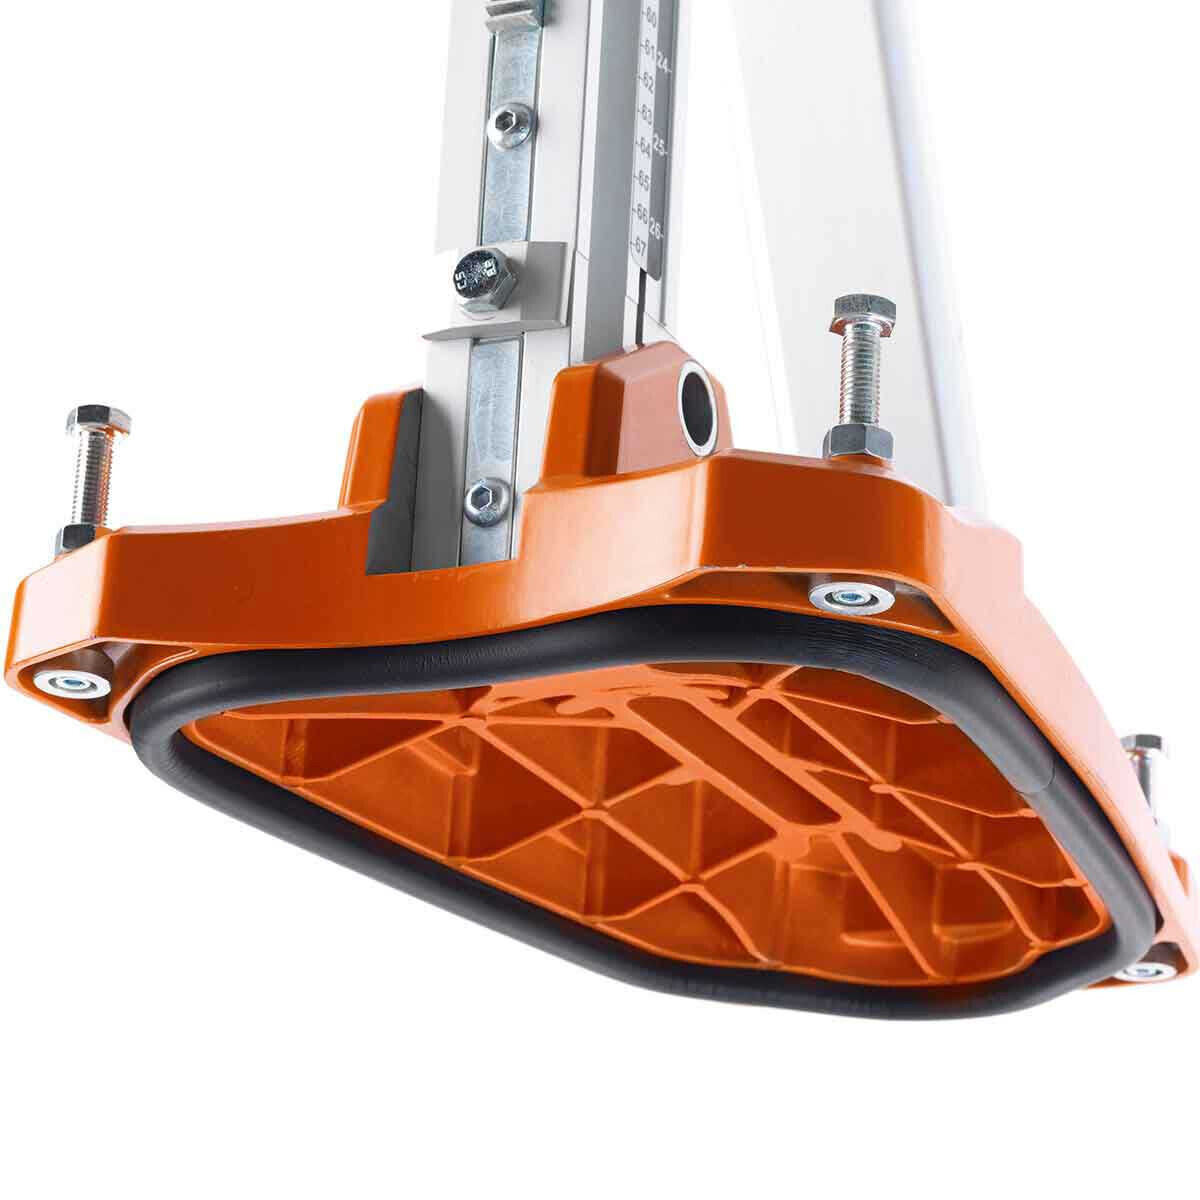 Husqvarna DS250 Core Drill Stand Base